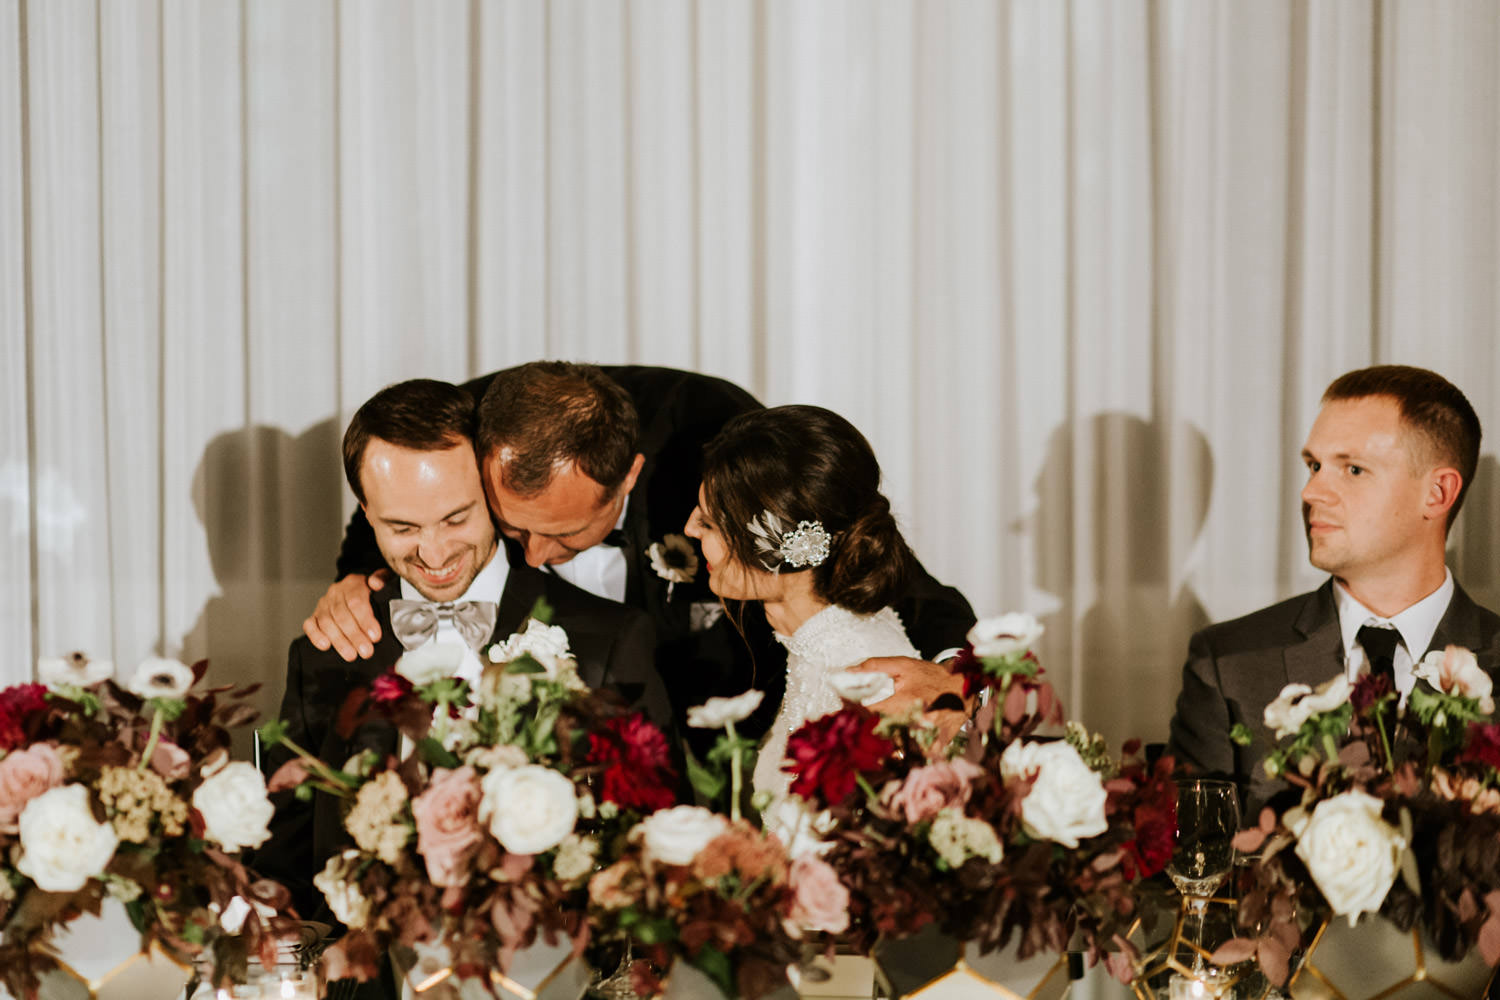 father of the bride kissing her daughter during the wedding at hotel gray